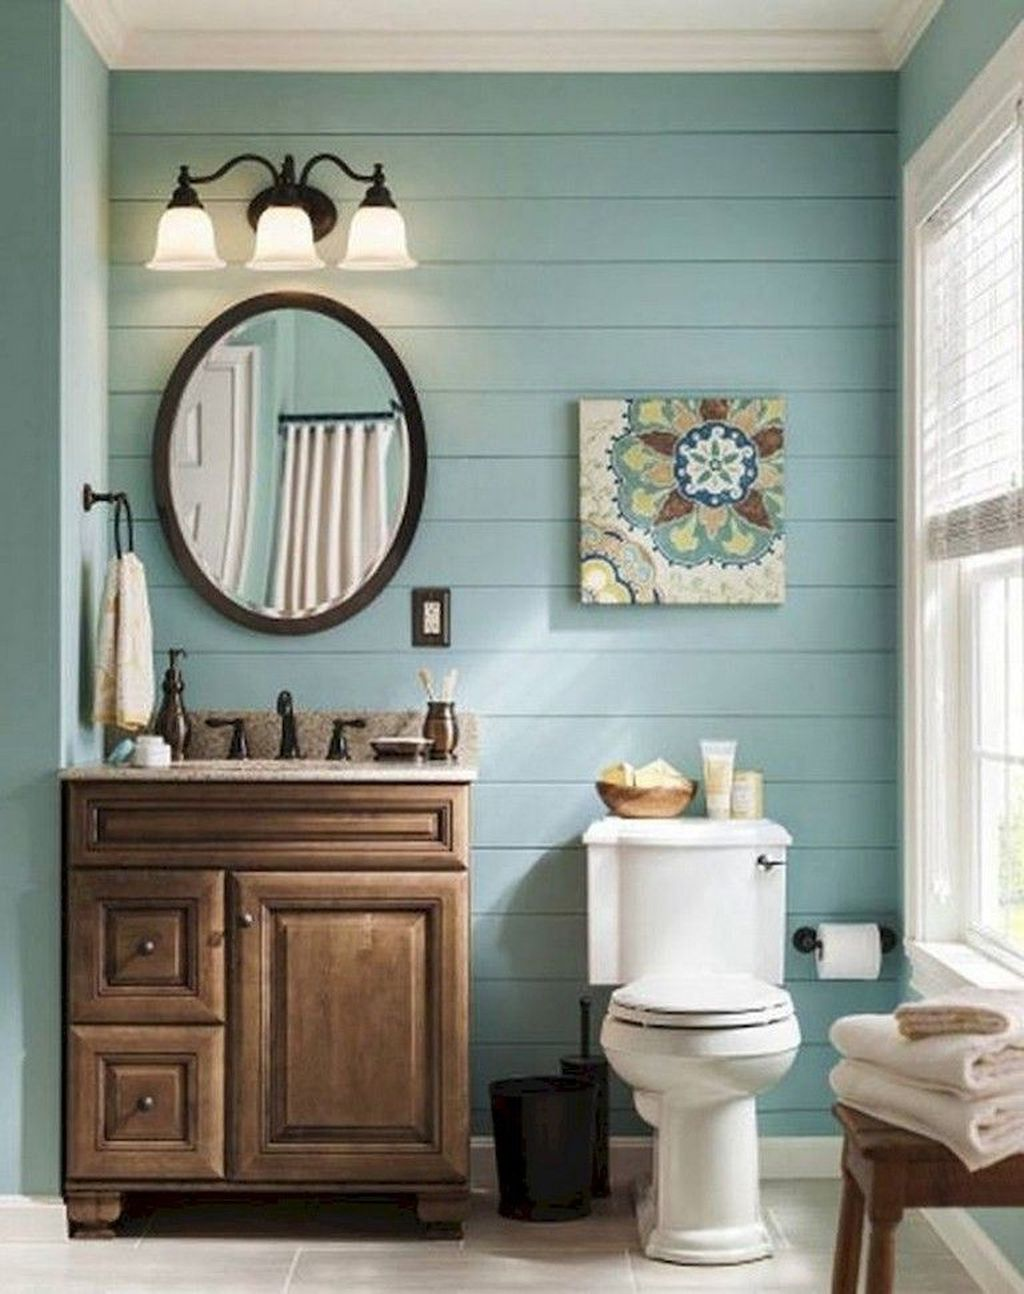 Fabulous Bathroom Decor Ideas With Coastal Style 14